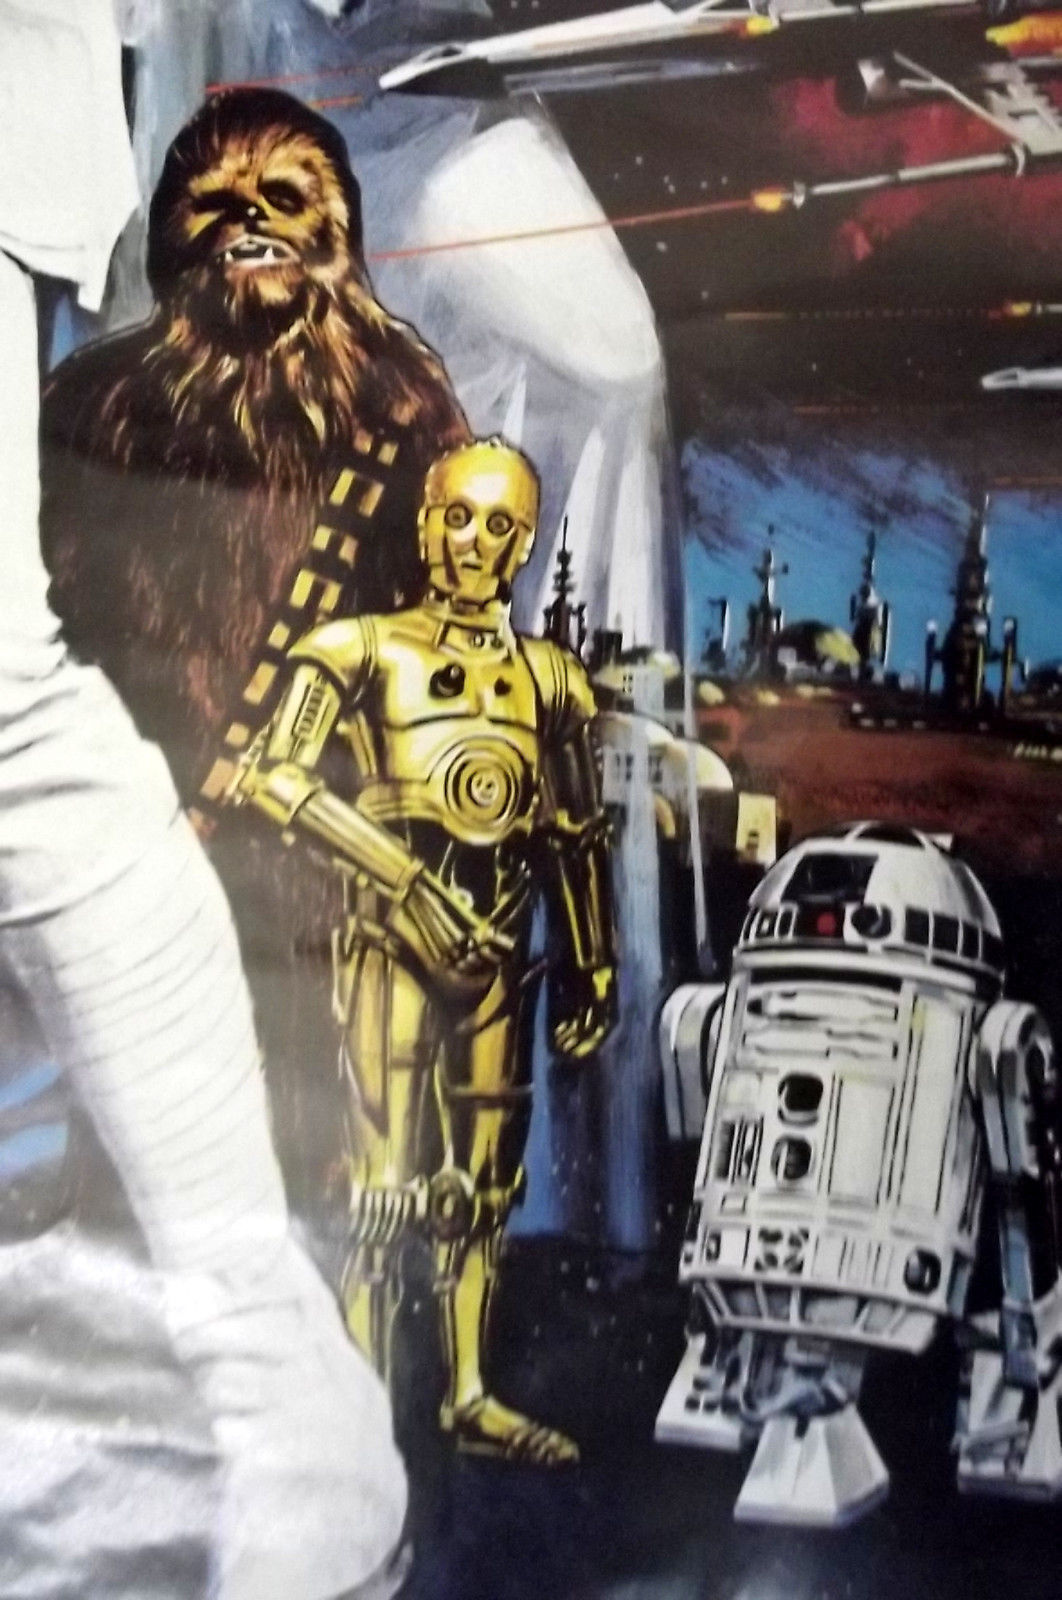 GEORGE LUCAS,DIRECTOR (STAR WARS) ORIGINAL VINTAGE MOVIE POSTER /CLASSIC SCI-FI